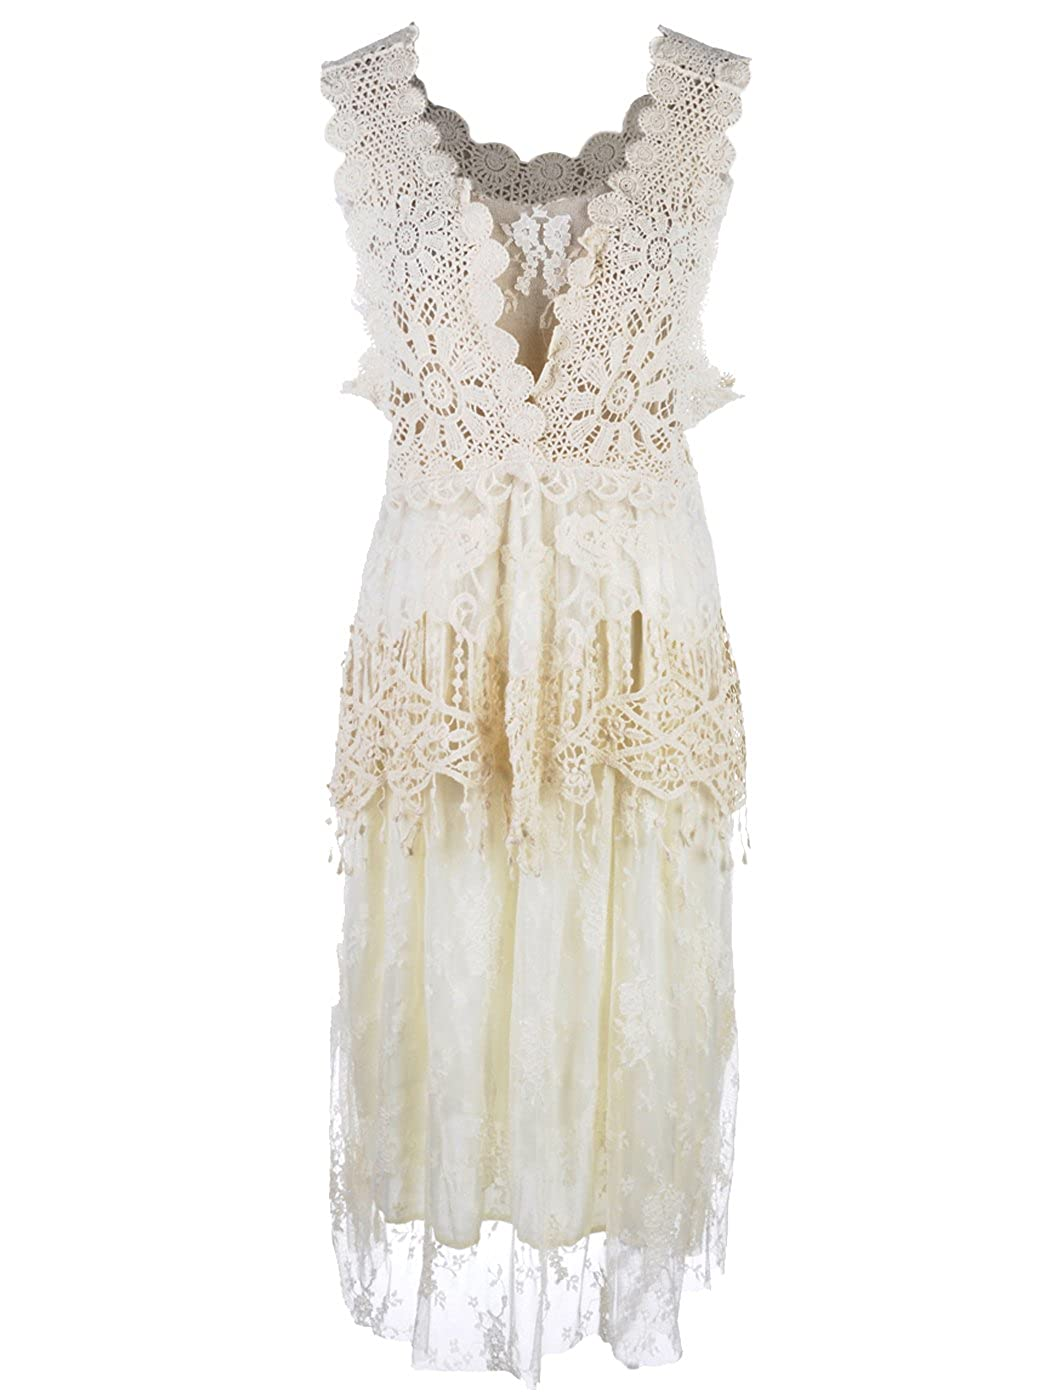 Flapper Dresses & Quality Flapper Costumes Anna-Kaci Womens Vintage Granny Influence Embroidery Detail Lace Ruffle Dress $47.90 AT vintagedancer.com